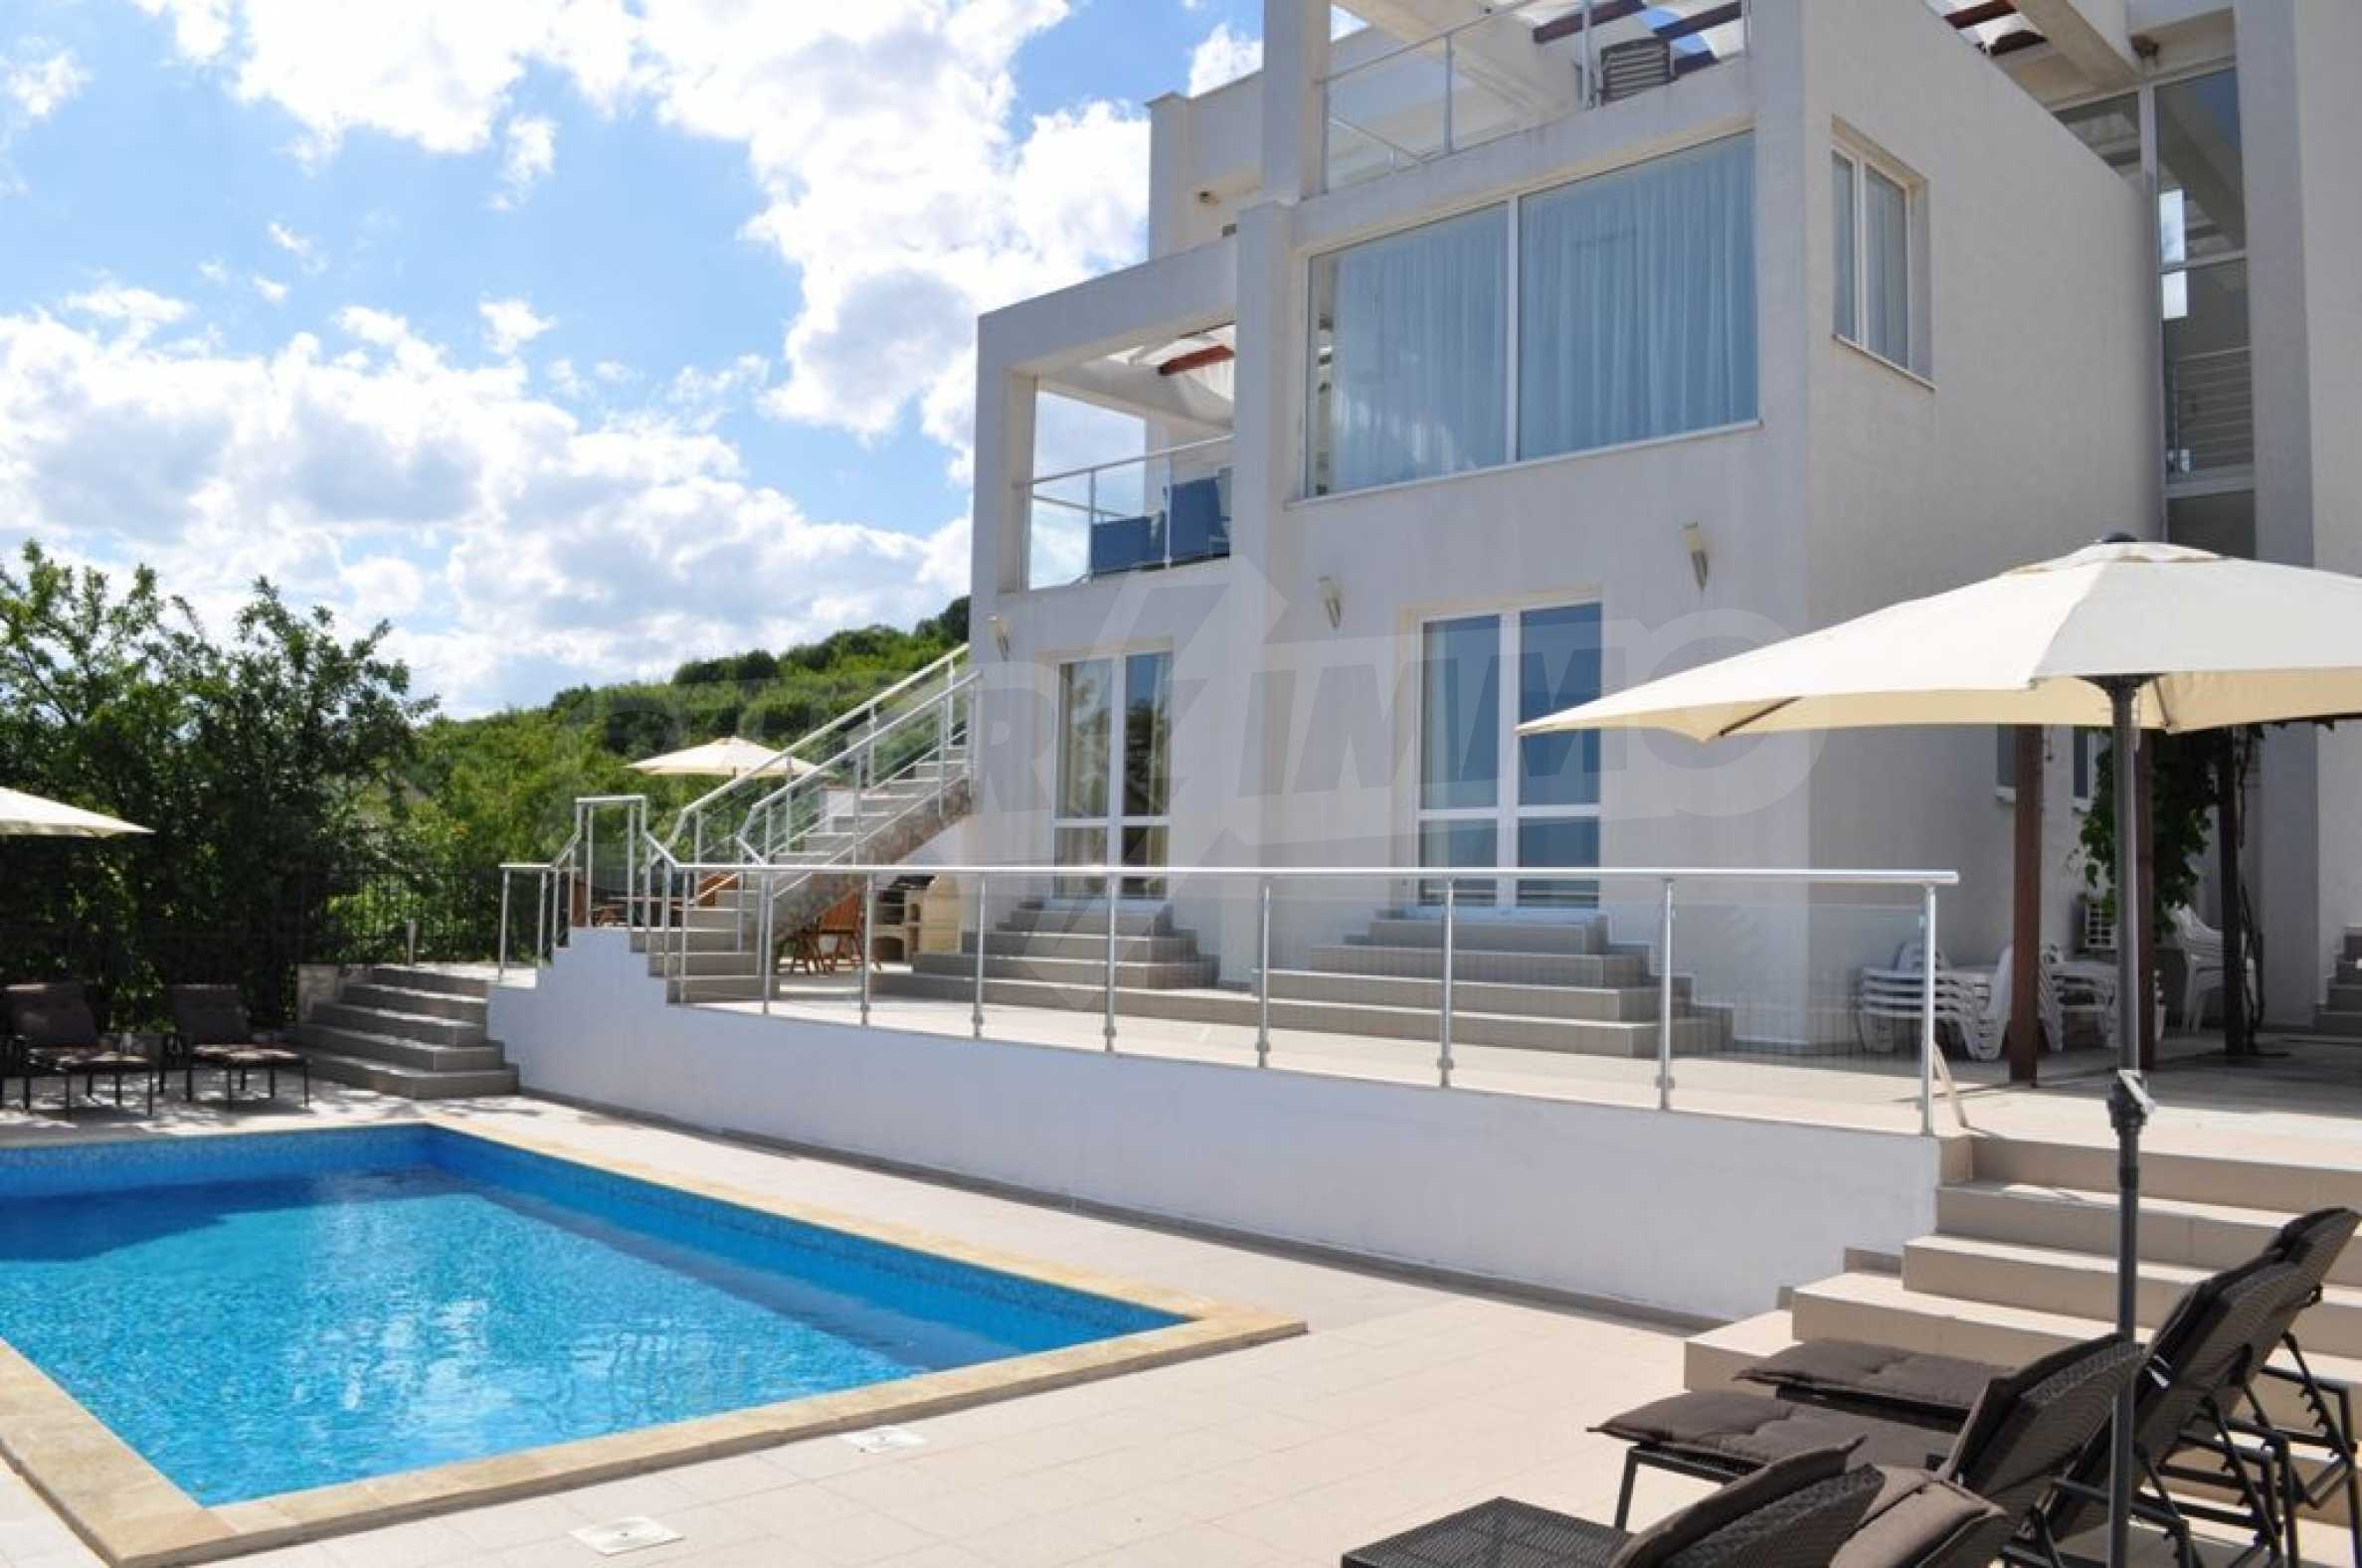 Luxury villa with 4 bedrooms for rent in Albena area